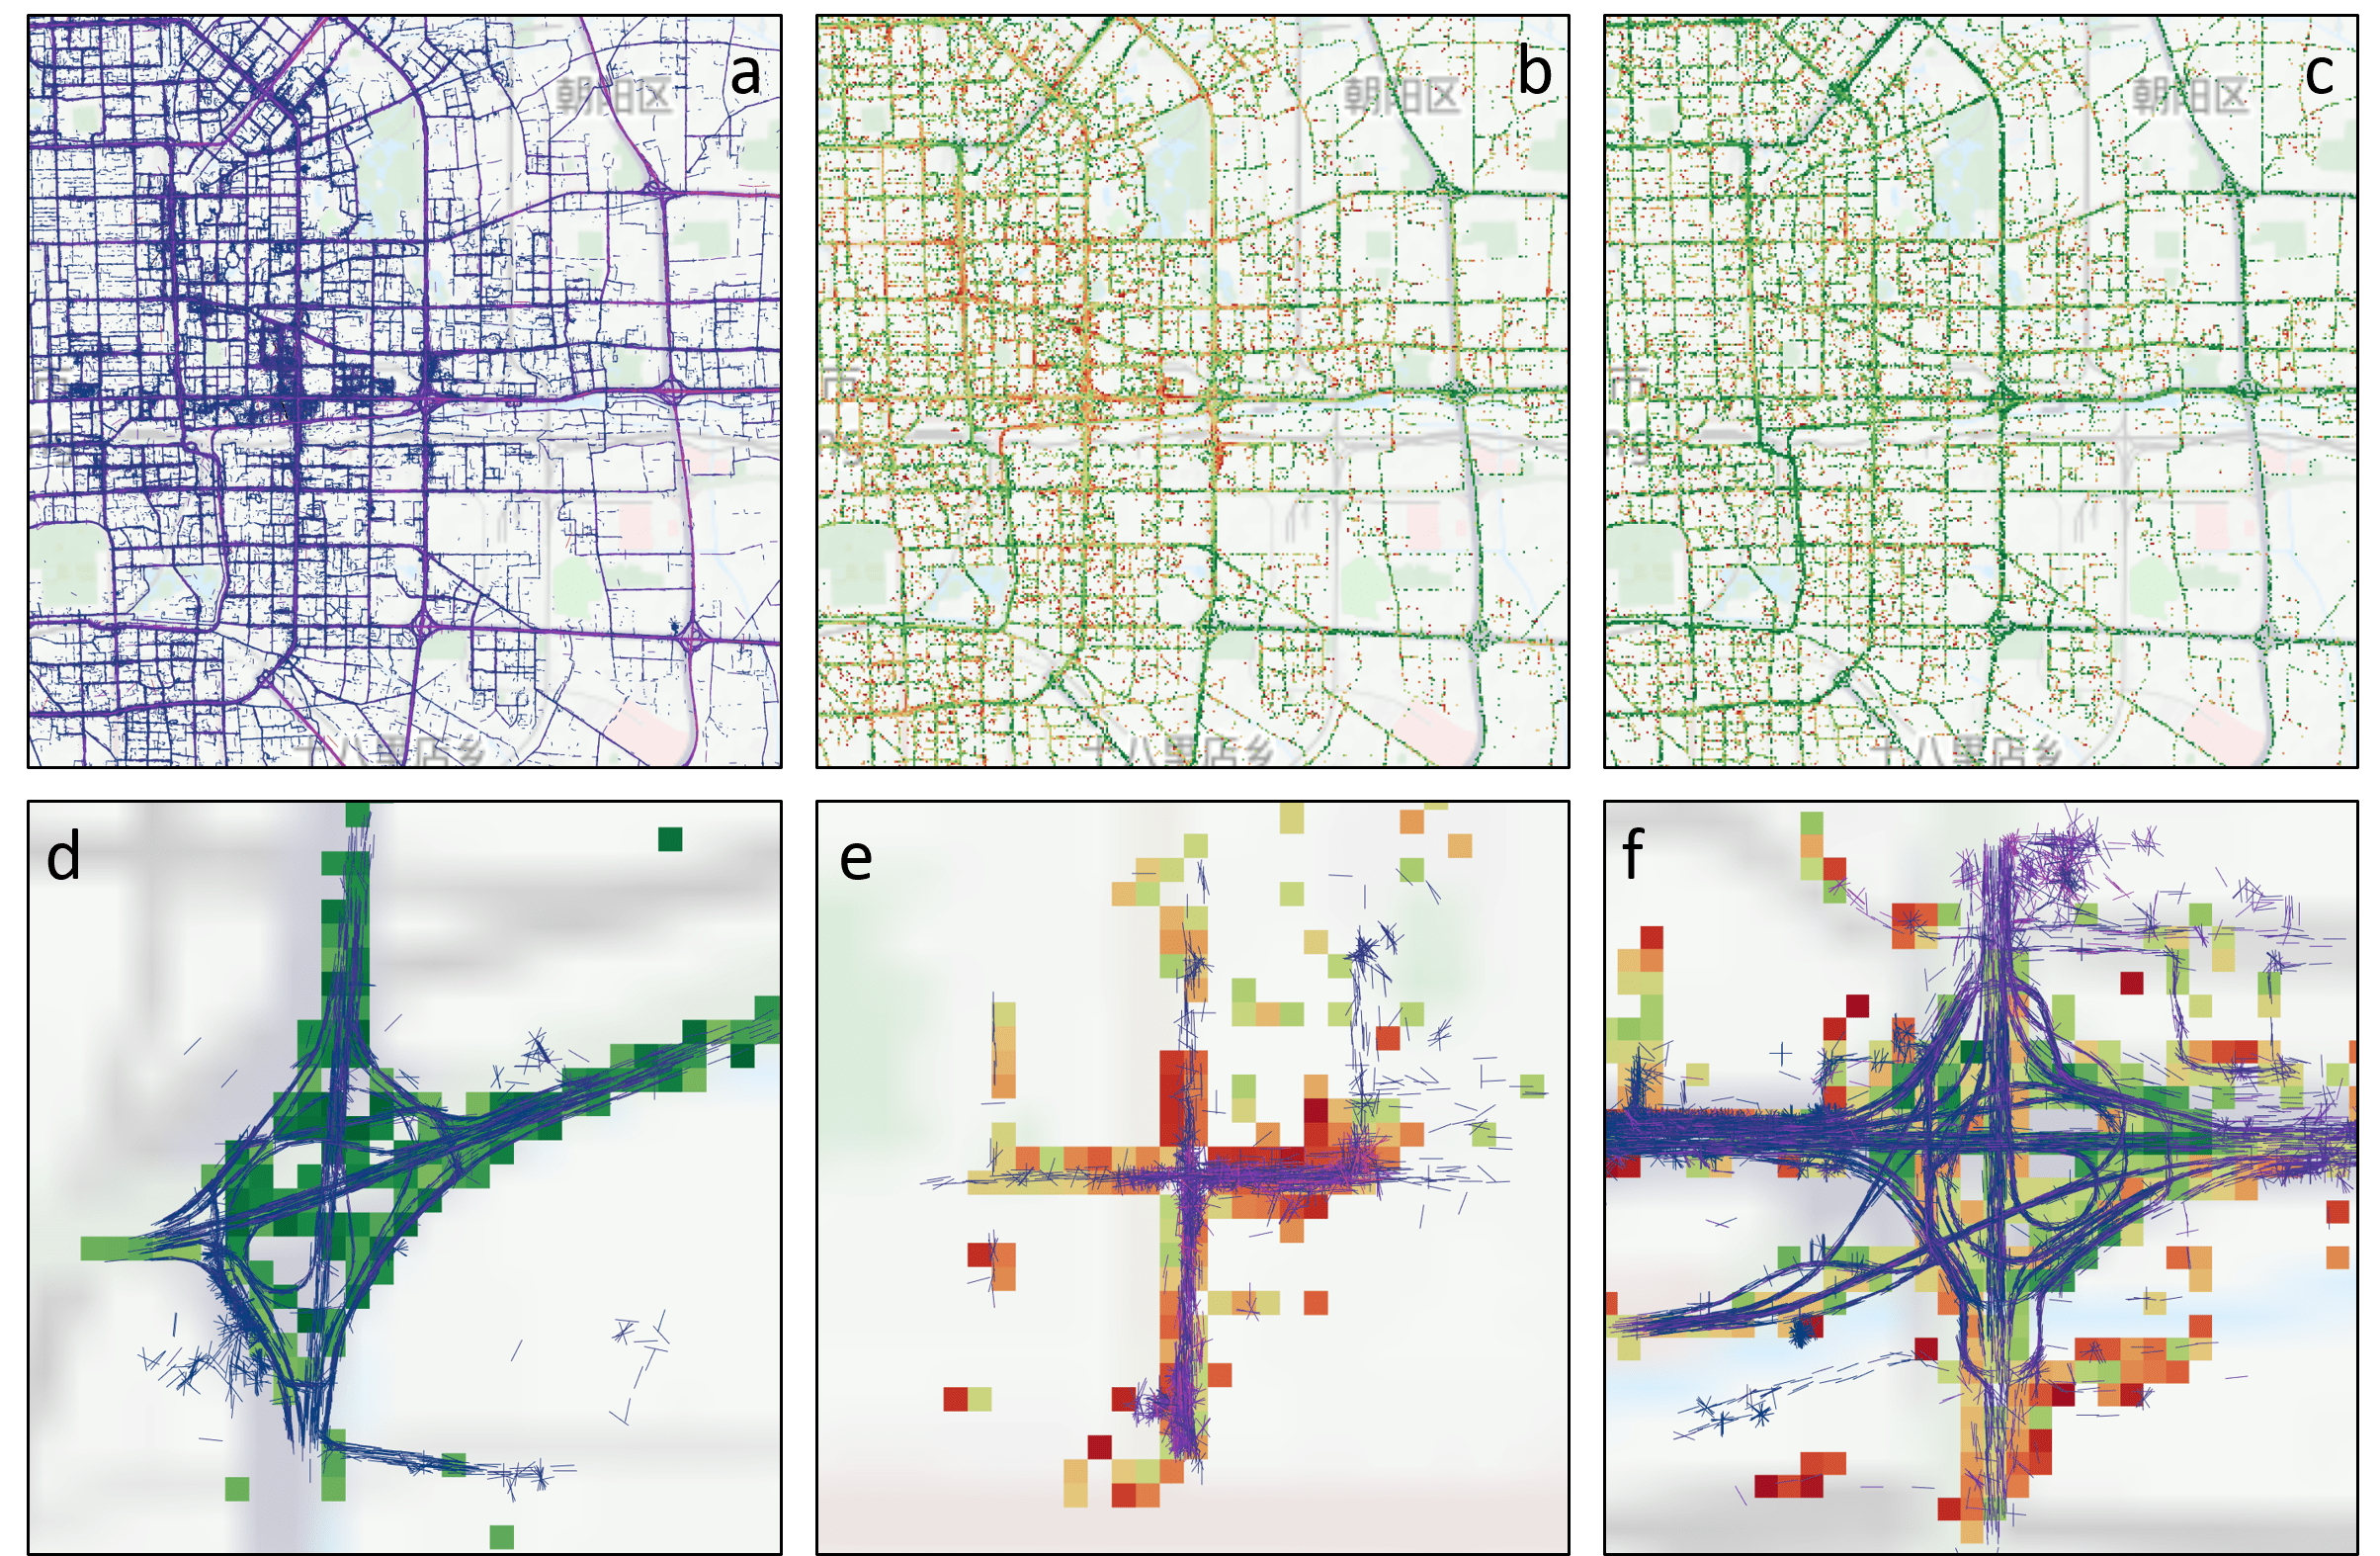 Images from the city dataset. a) One day's worth of trajectory data in the eastern part of the city colored according to speed. Blue points represent slower vehicles while purple/pink points represent faster vehicles. b/c) Traffic levels at 6pm (rush hour) and 9pm (after rush hour) respectively. Low traffic areas are shown in green while high traffic areas are shown in orange/red. d) A feature extracted from the data representing a low traffic highway intersection. The blue trajectories indicate taxis taking an indirect route to their destination. e) A feature representing a high traffic local city intersection. The purple/pink trajectories indicate taxis taking a direct route to their destination. f) A feature representing a different highway intersection which contains both high and low traffic regions as well trajectories taking both a direct and indirect route. For more information see Section